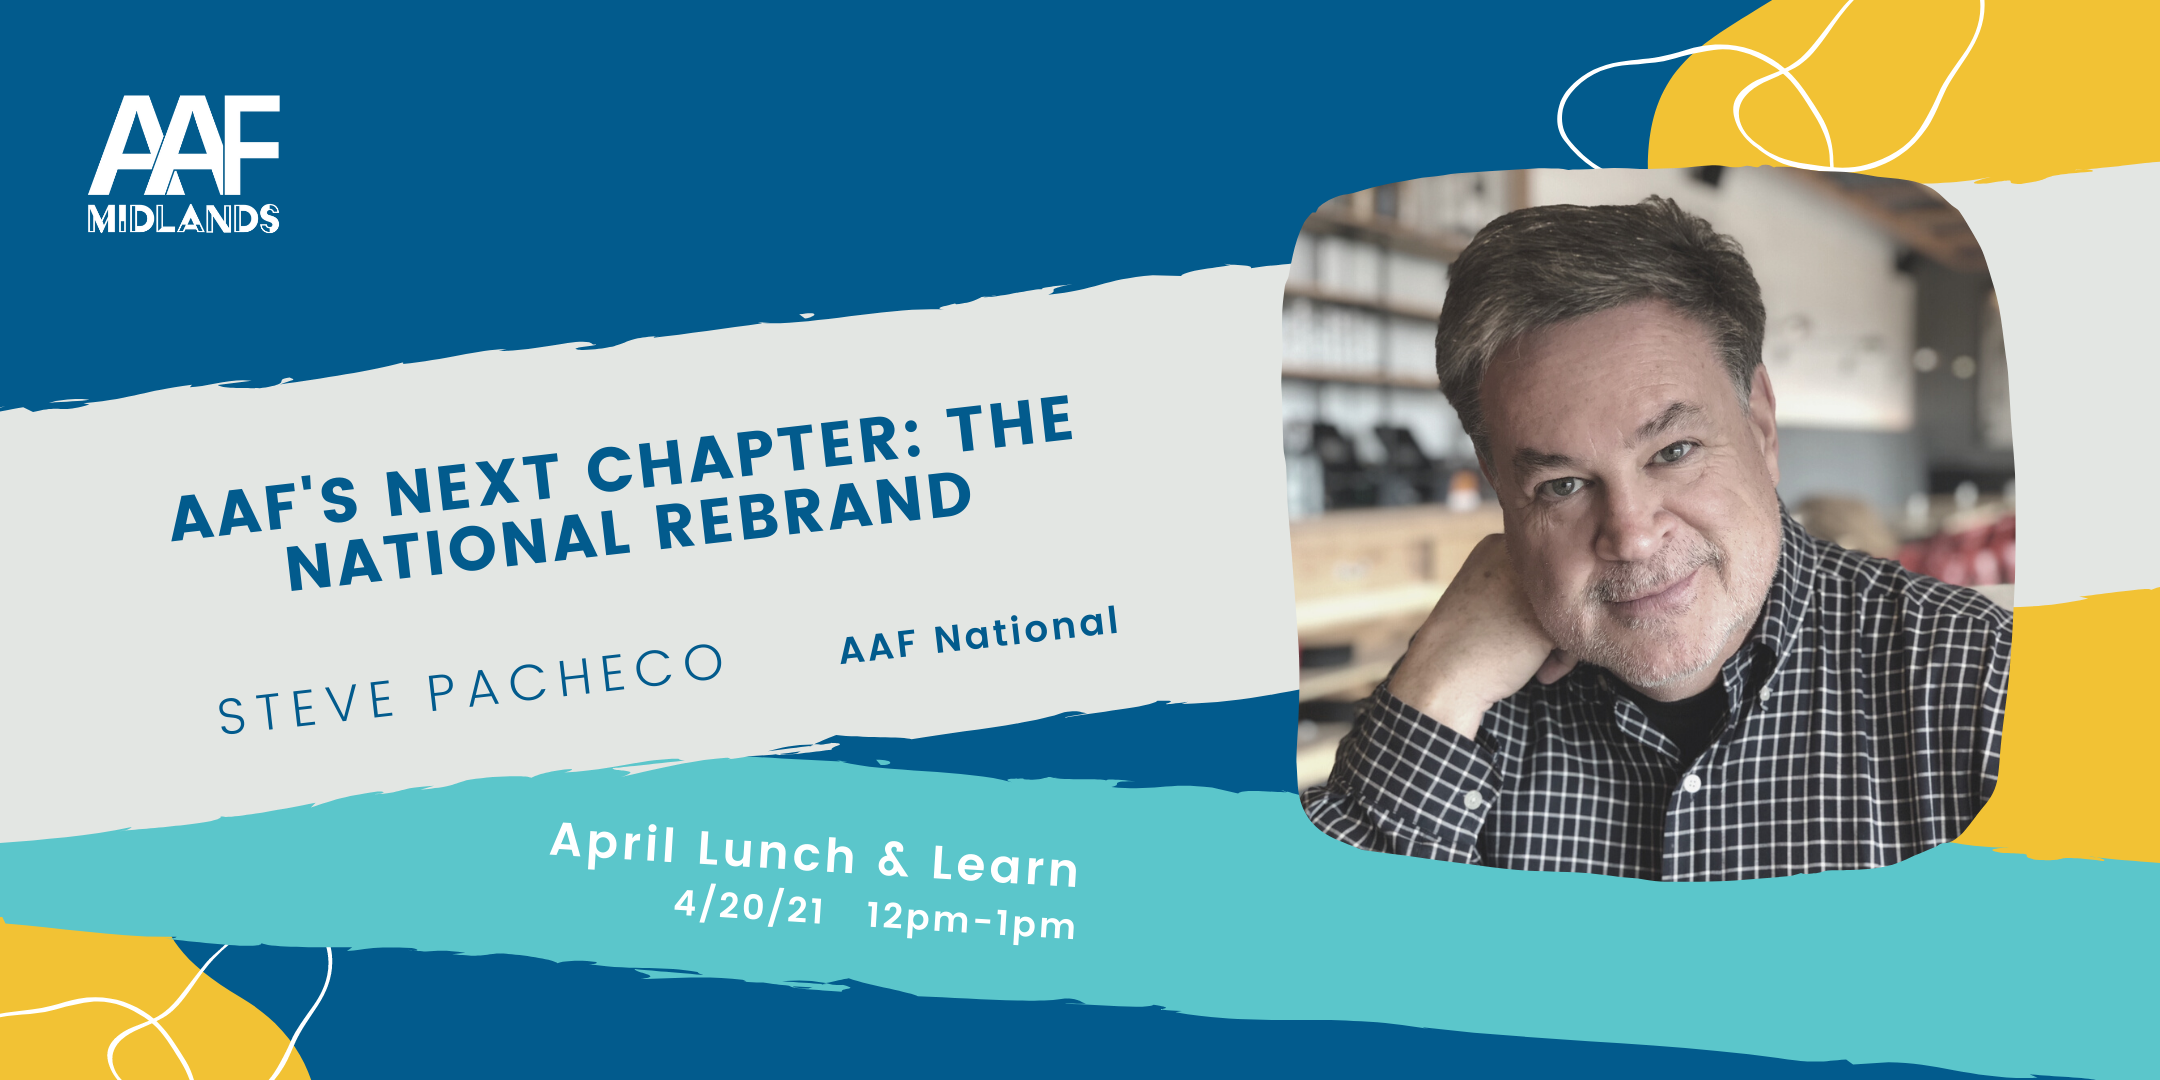 event graphic with aaf midlands logo that says aaf's next chapter: the national rebrand. April lunch and learn on april 20, 2021 from 12 to 1 pm